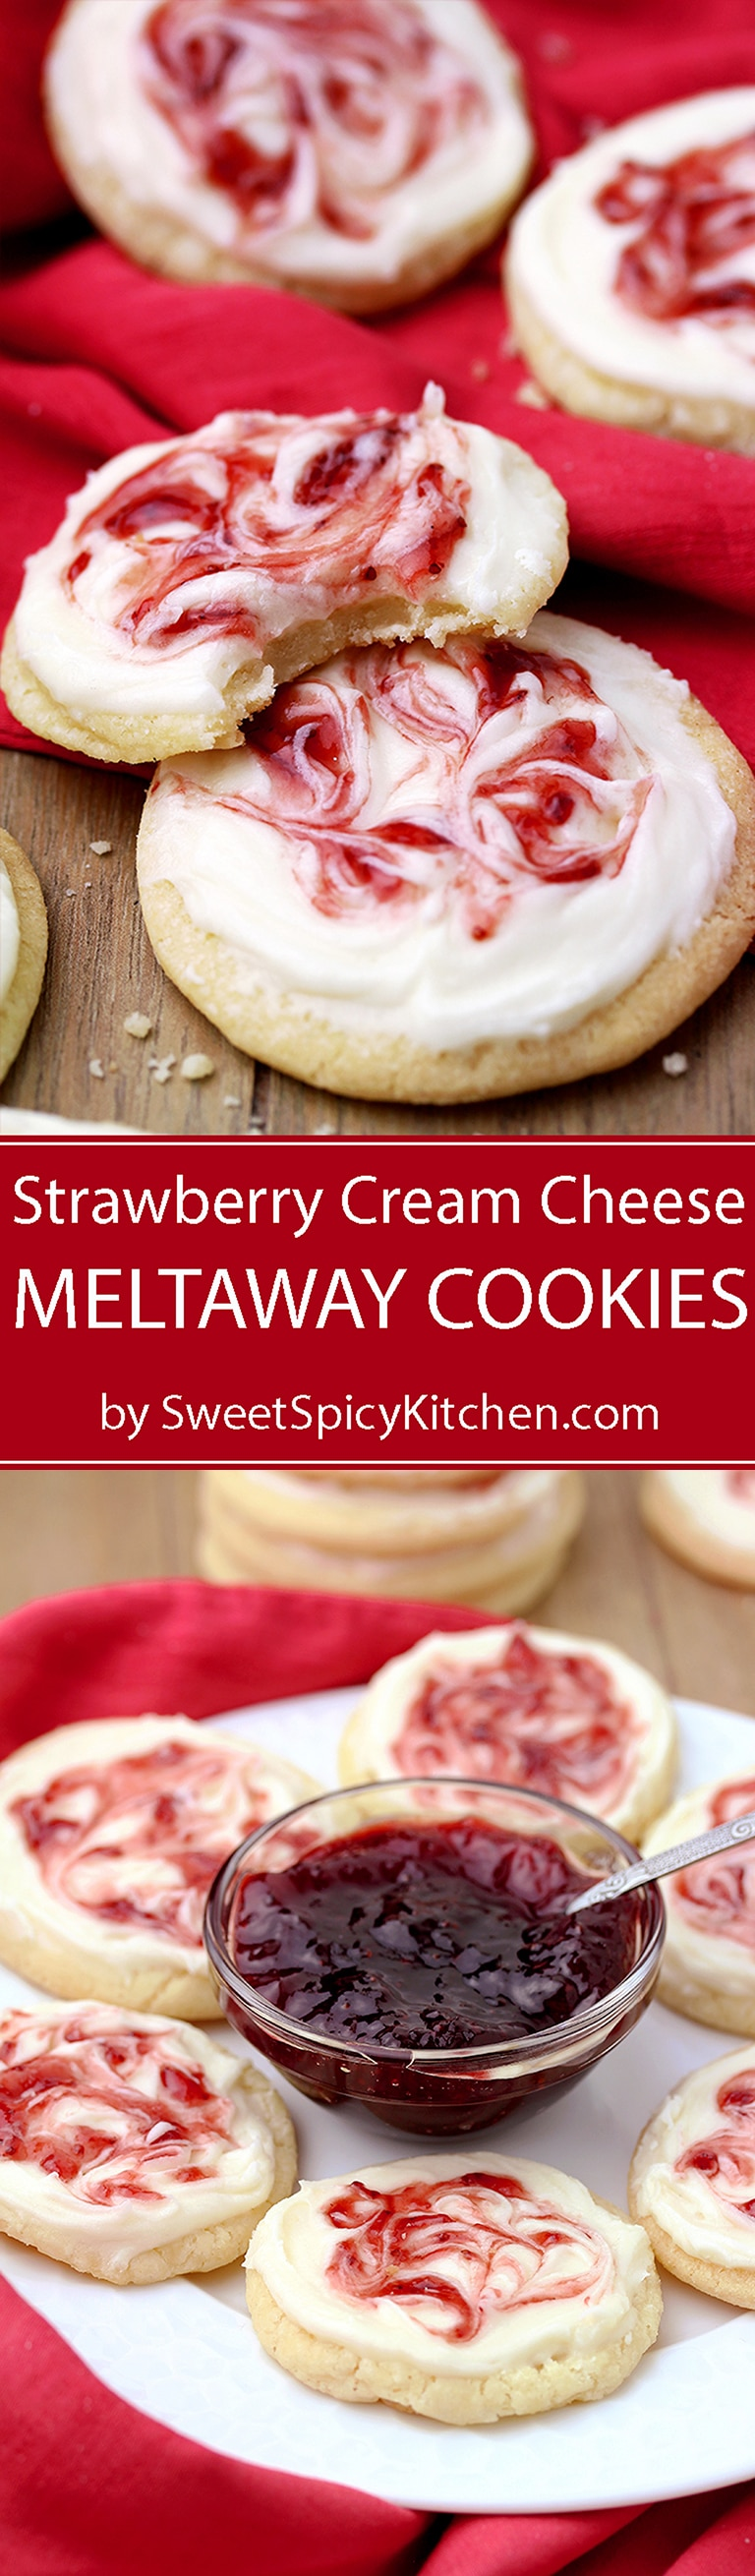 These Strawberry Cream Cheese Meltaway Cookies topped with cream cheese frosting and swirled with strawberry jam, simply melts in your mouth